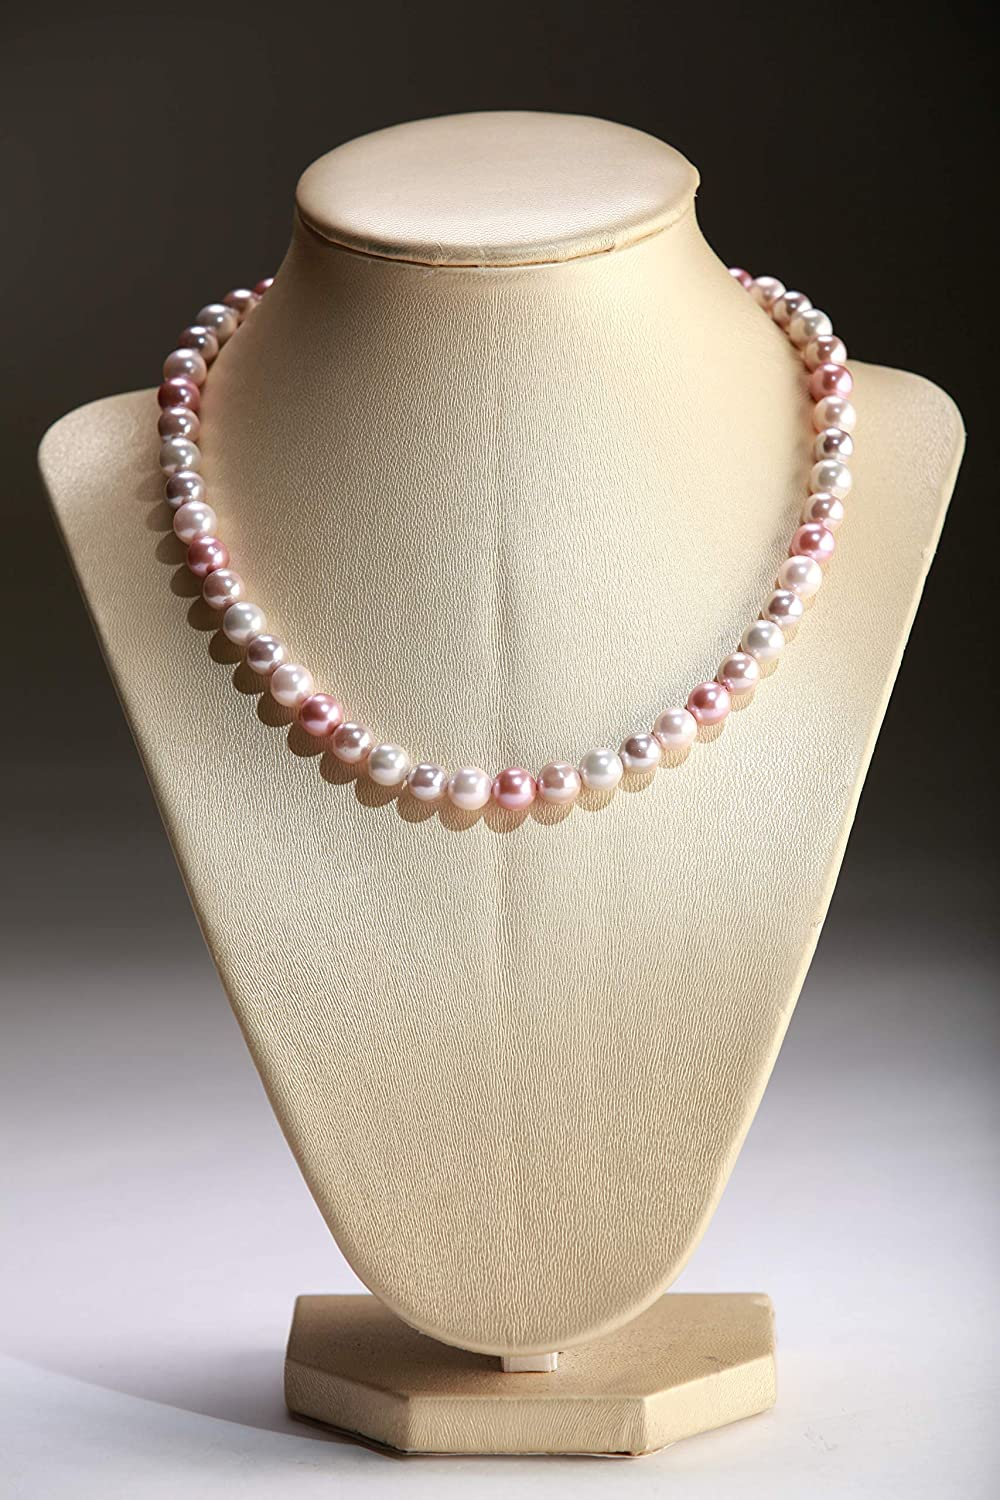 MOP Shell Max 66% OFF Pearl Necklace Magnetic Clasp Mail order cheap with